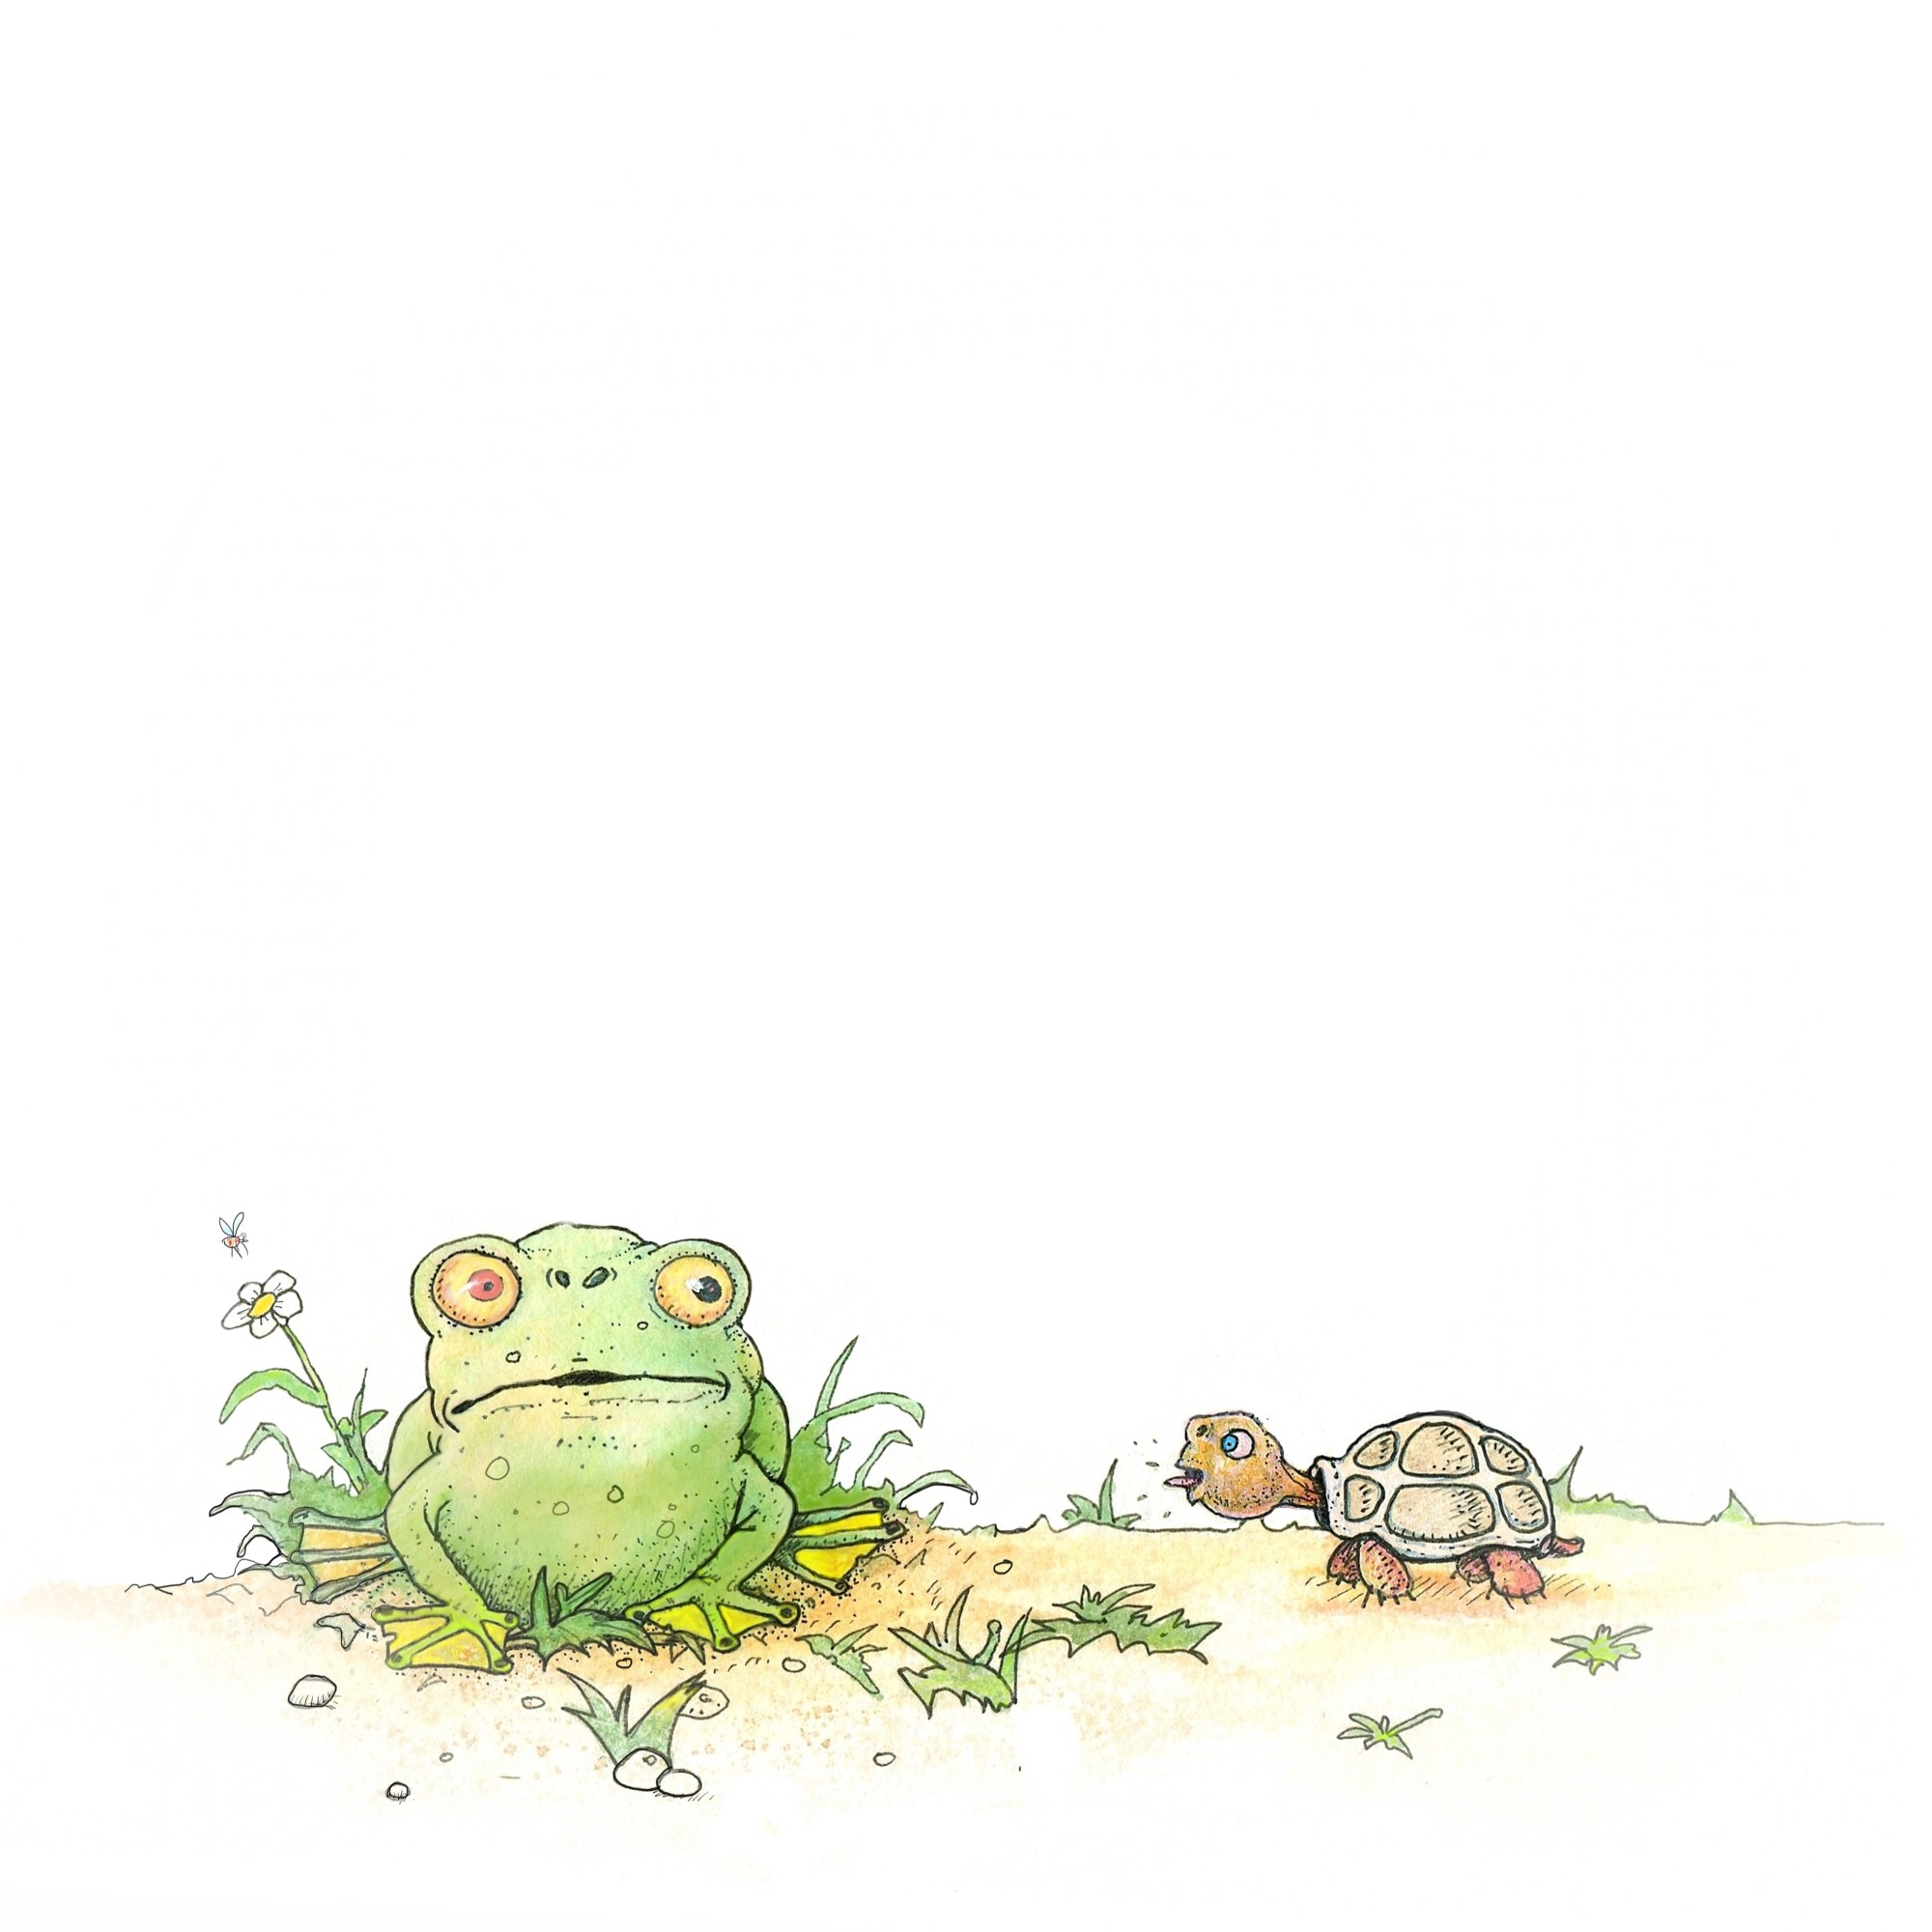 Drawing of green toad looking at a turtle sticking its tongue out